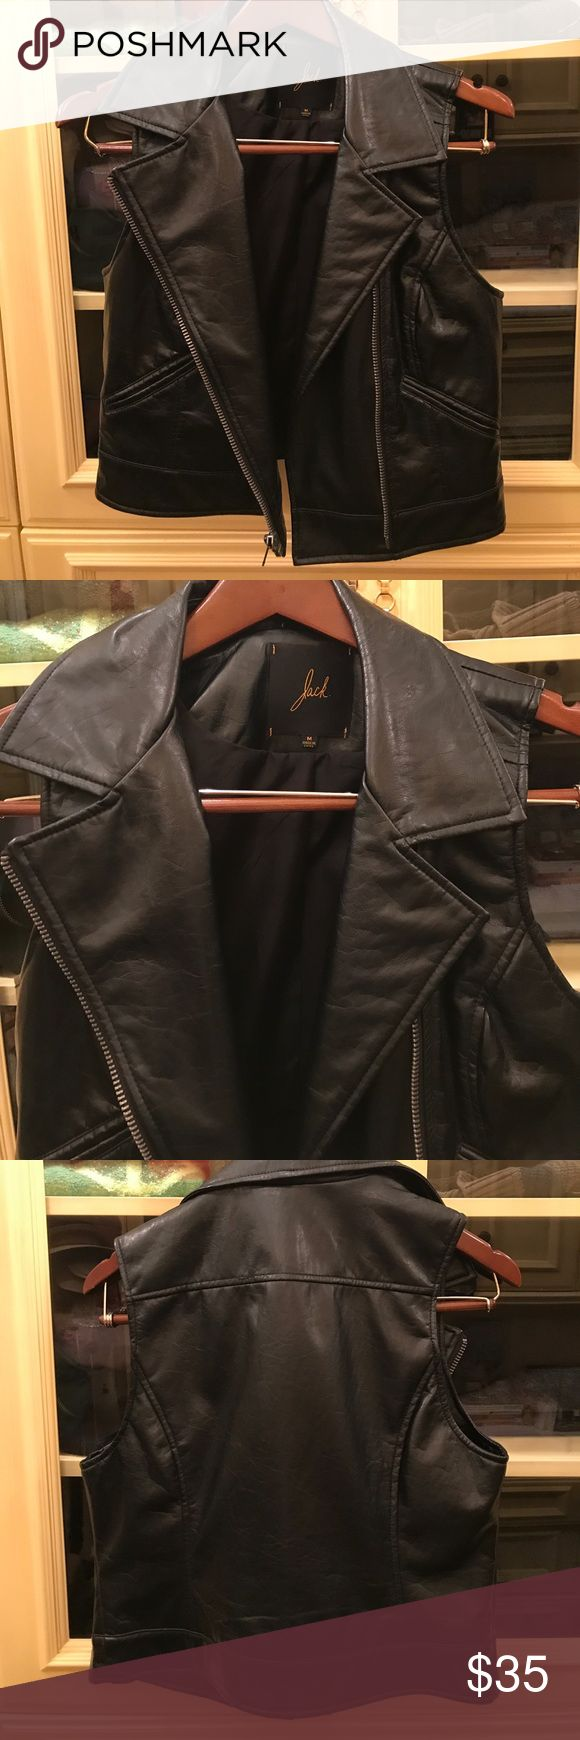 NWOT Jack Motorcycle Leather Vest In perfect condition leather vest with zip size m looks like it would fit size 6-8 Jack by BB Dakota Jackets & Coats Vests